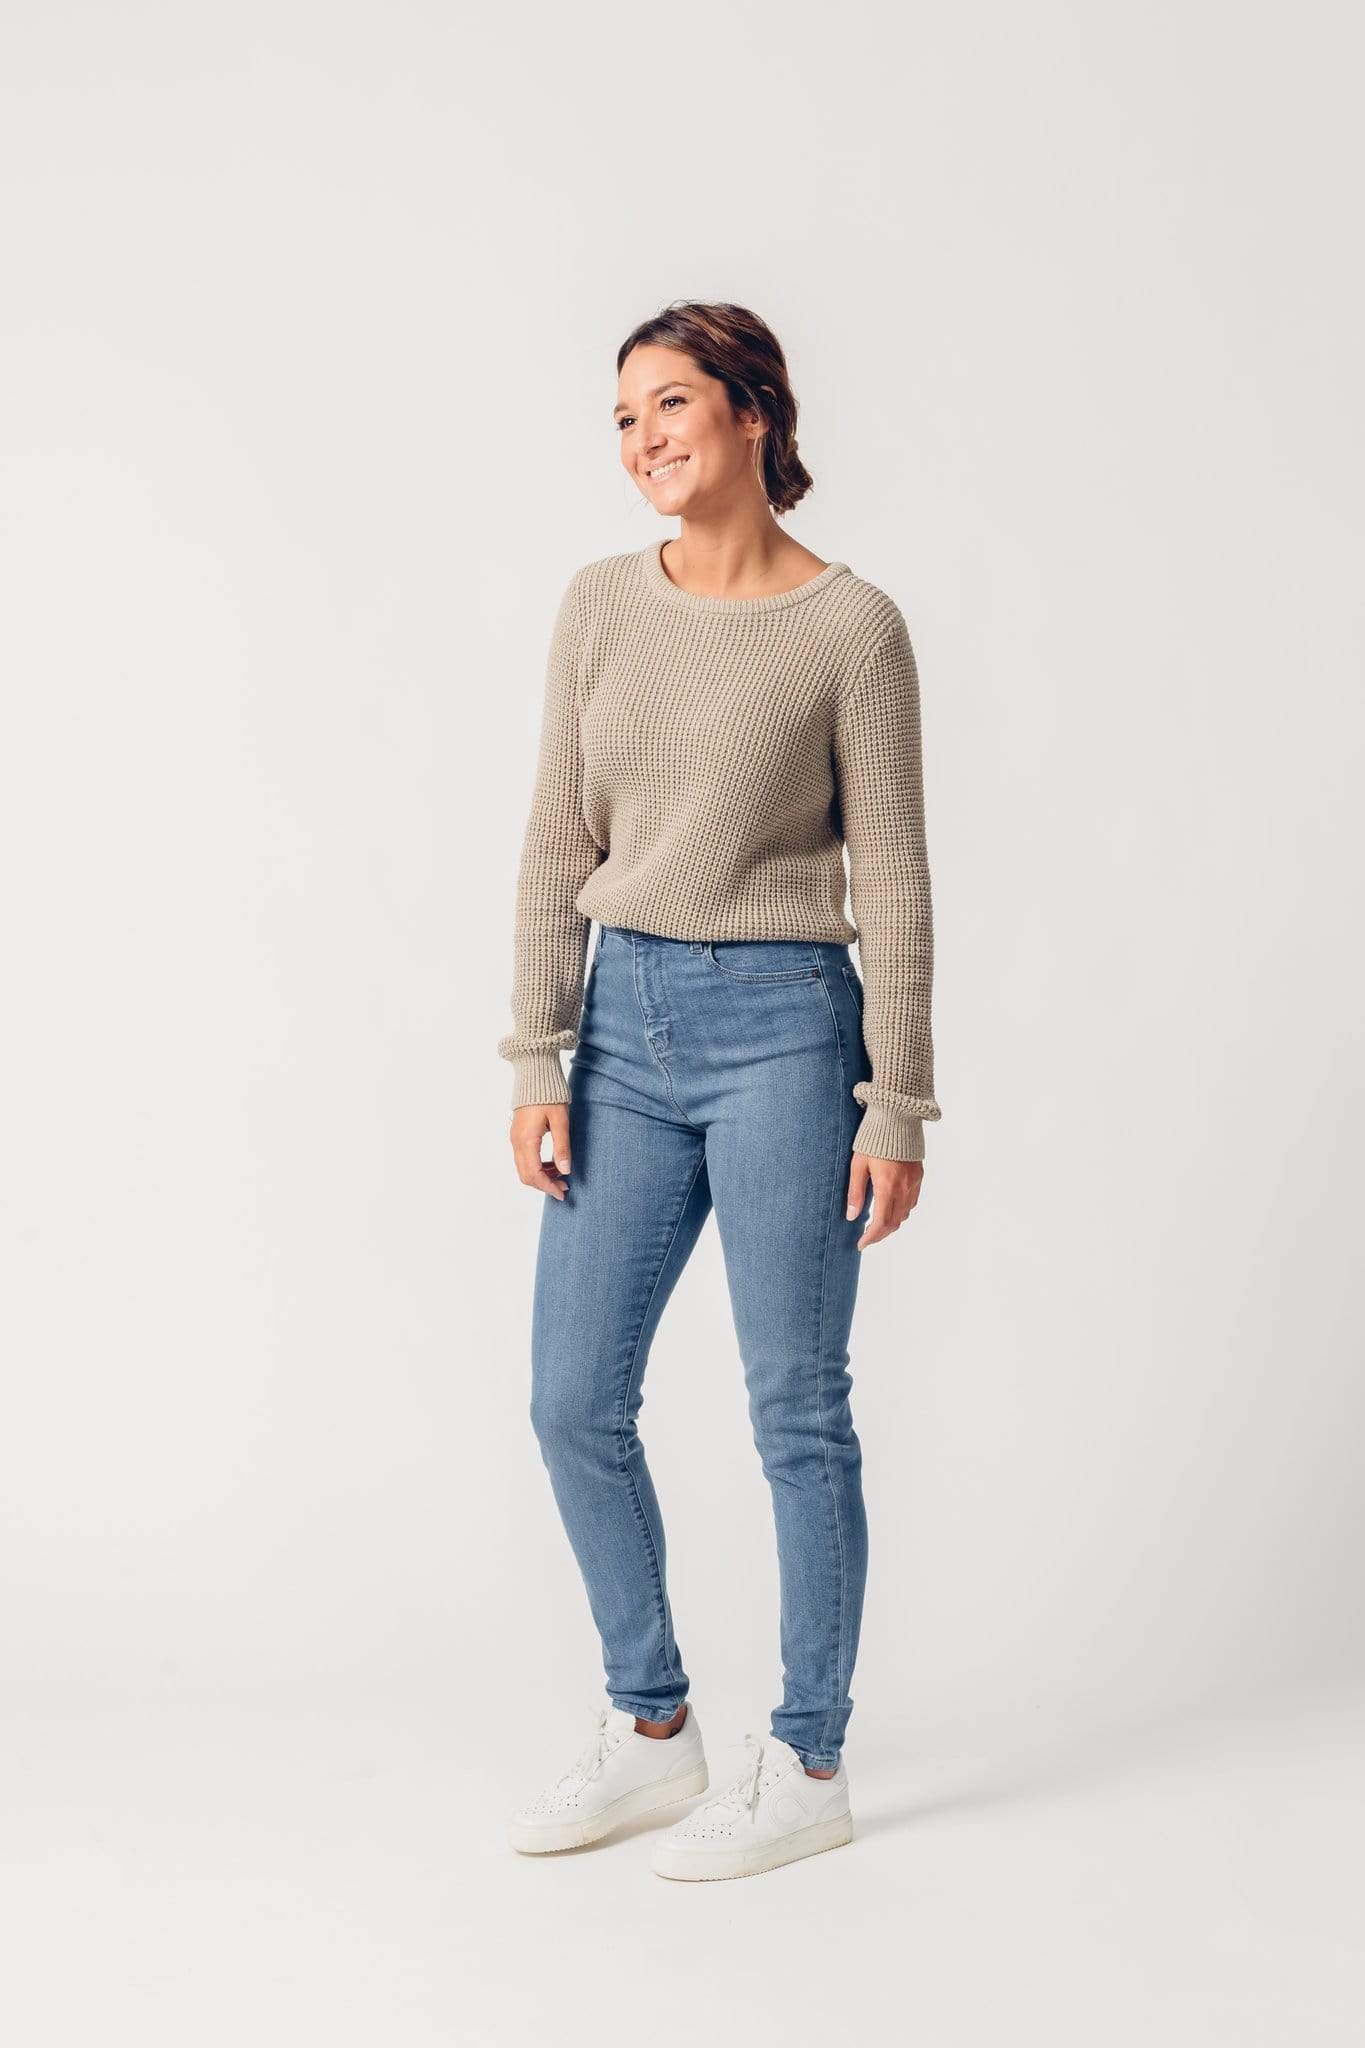 The Yakit Rakit Ltd Jeans CARRIE Jeans by UCM in Organic Cotton. sustainable fashion ethical fashion